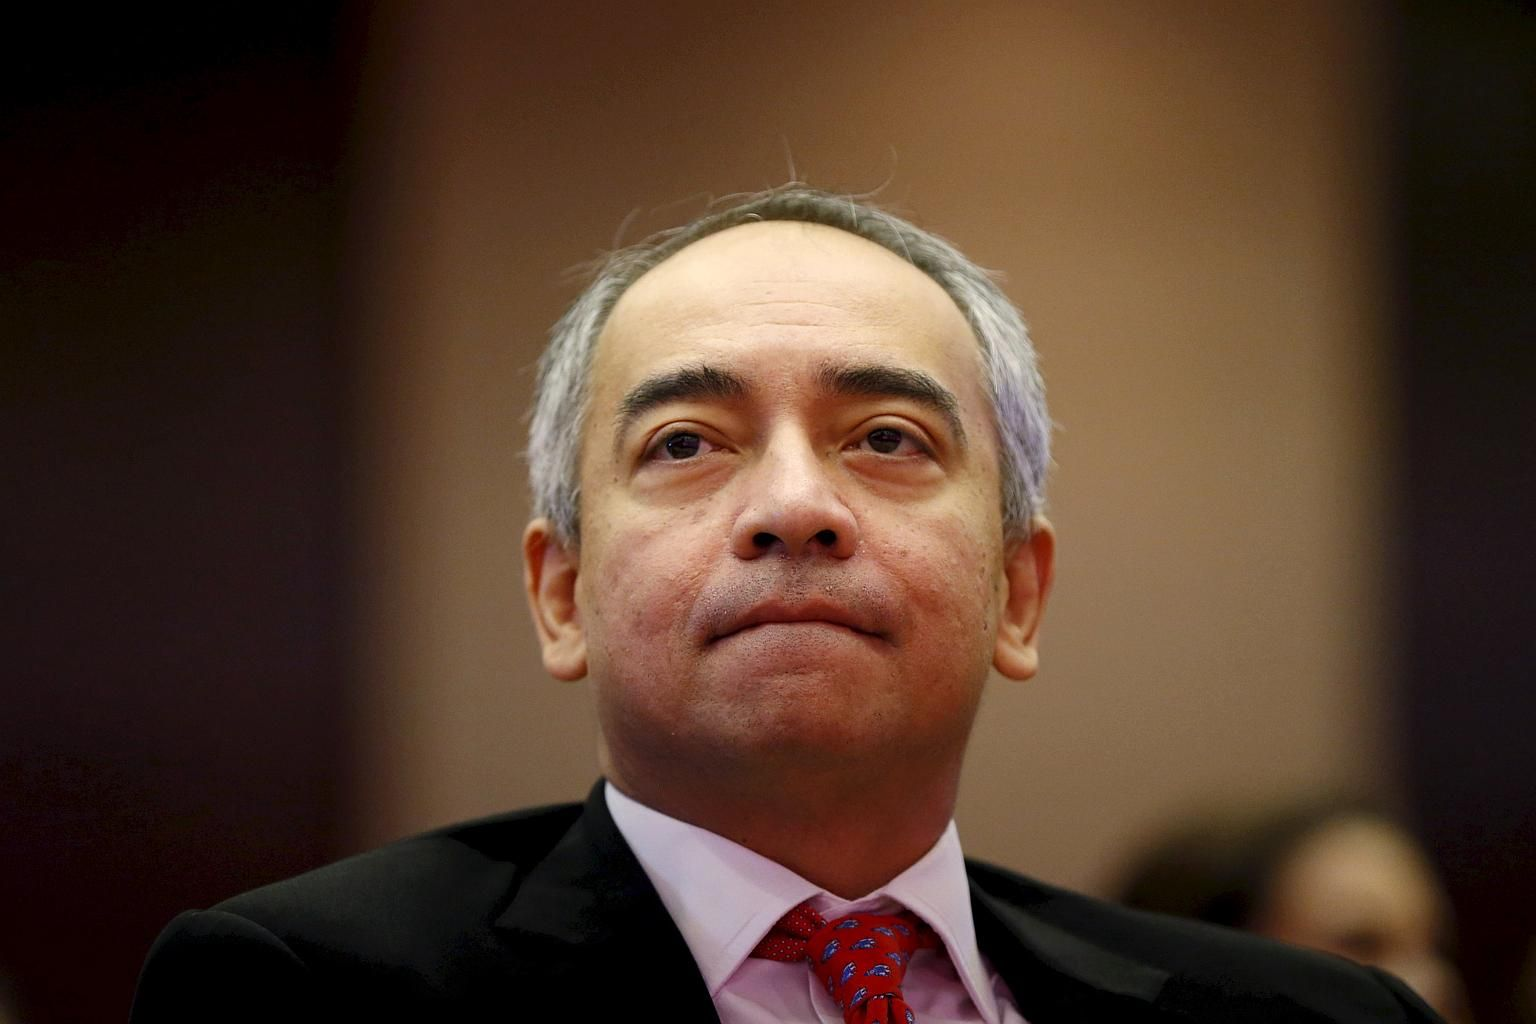 Resume When Will Scandal Resume cimb chairman nazir razak to resume duties after review into money transfers